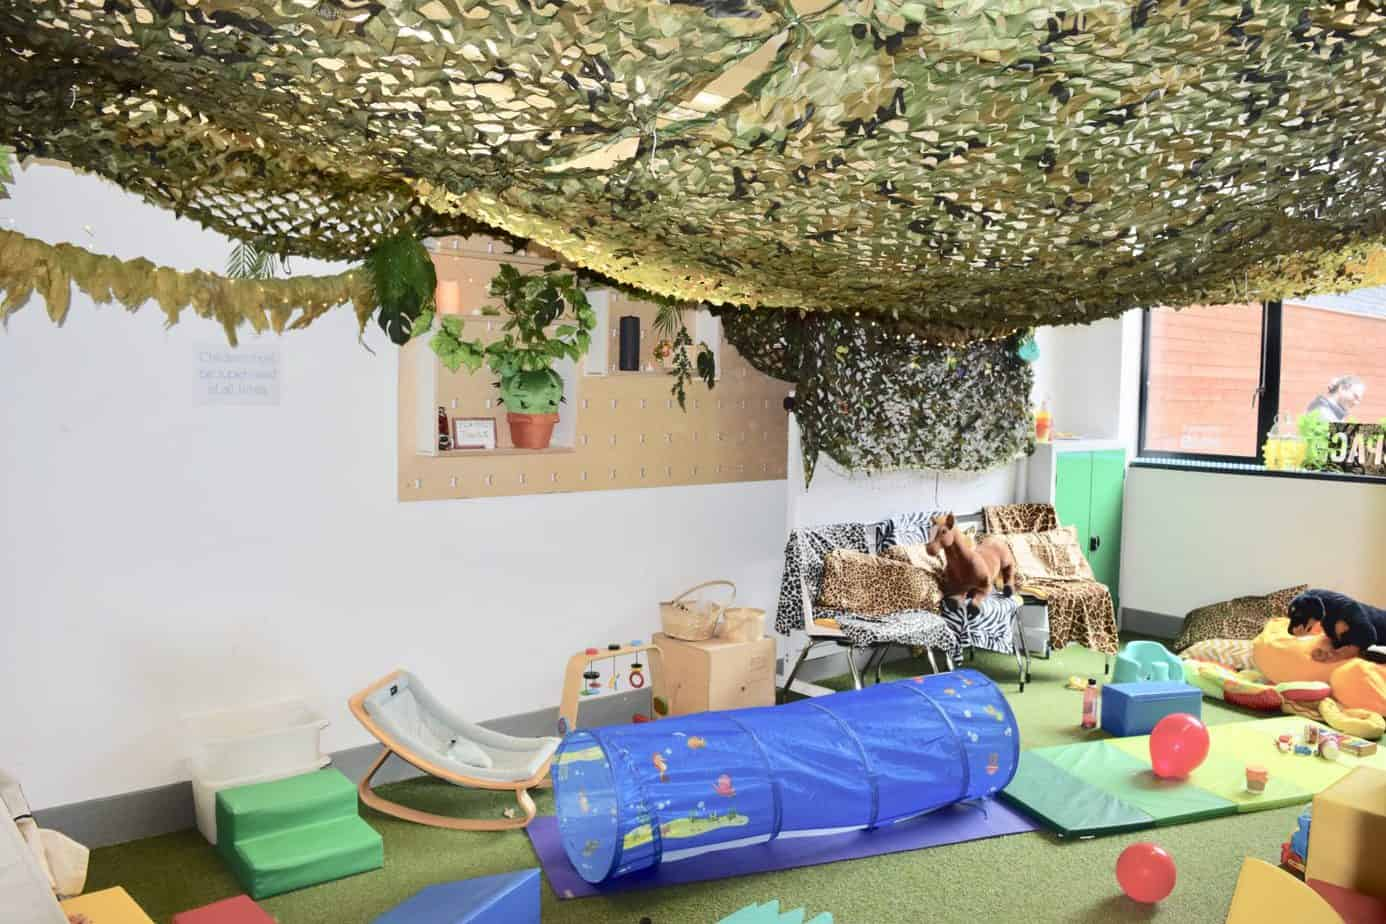 The jungle themed baby room a Playfest impact hub birmingham